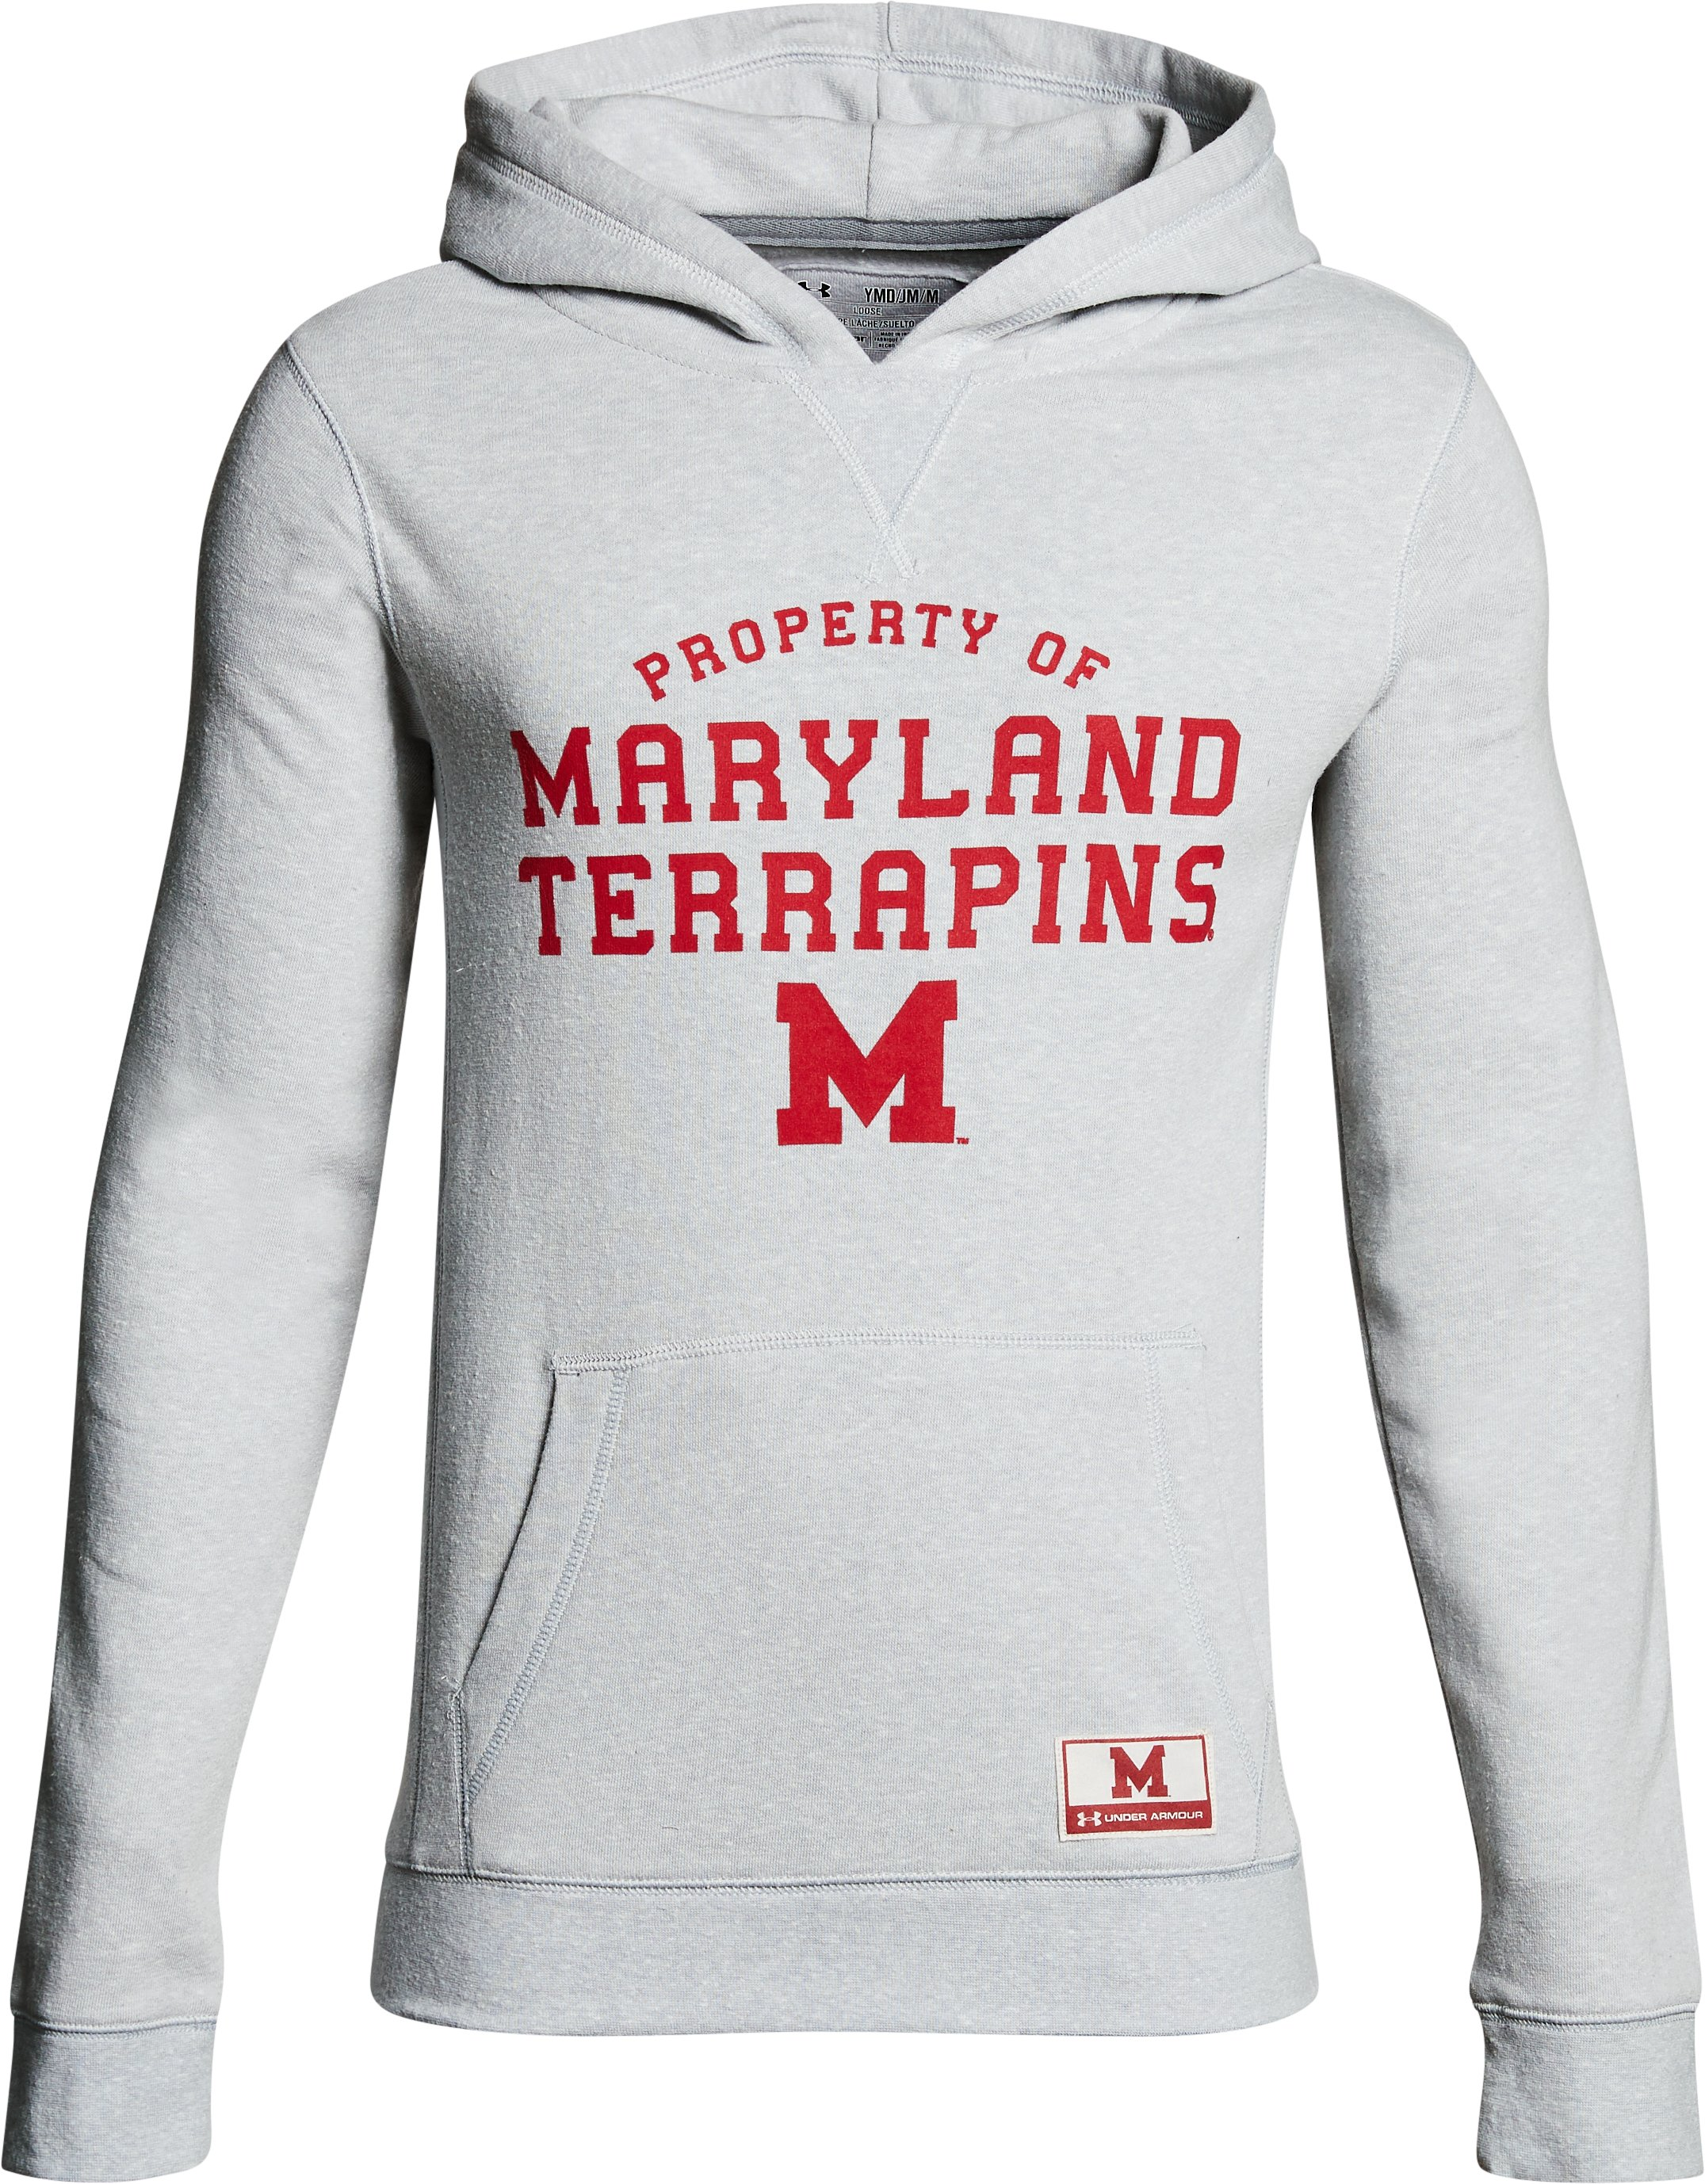 Boy's Maryland Iconic Hoodie, Gray, undefined